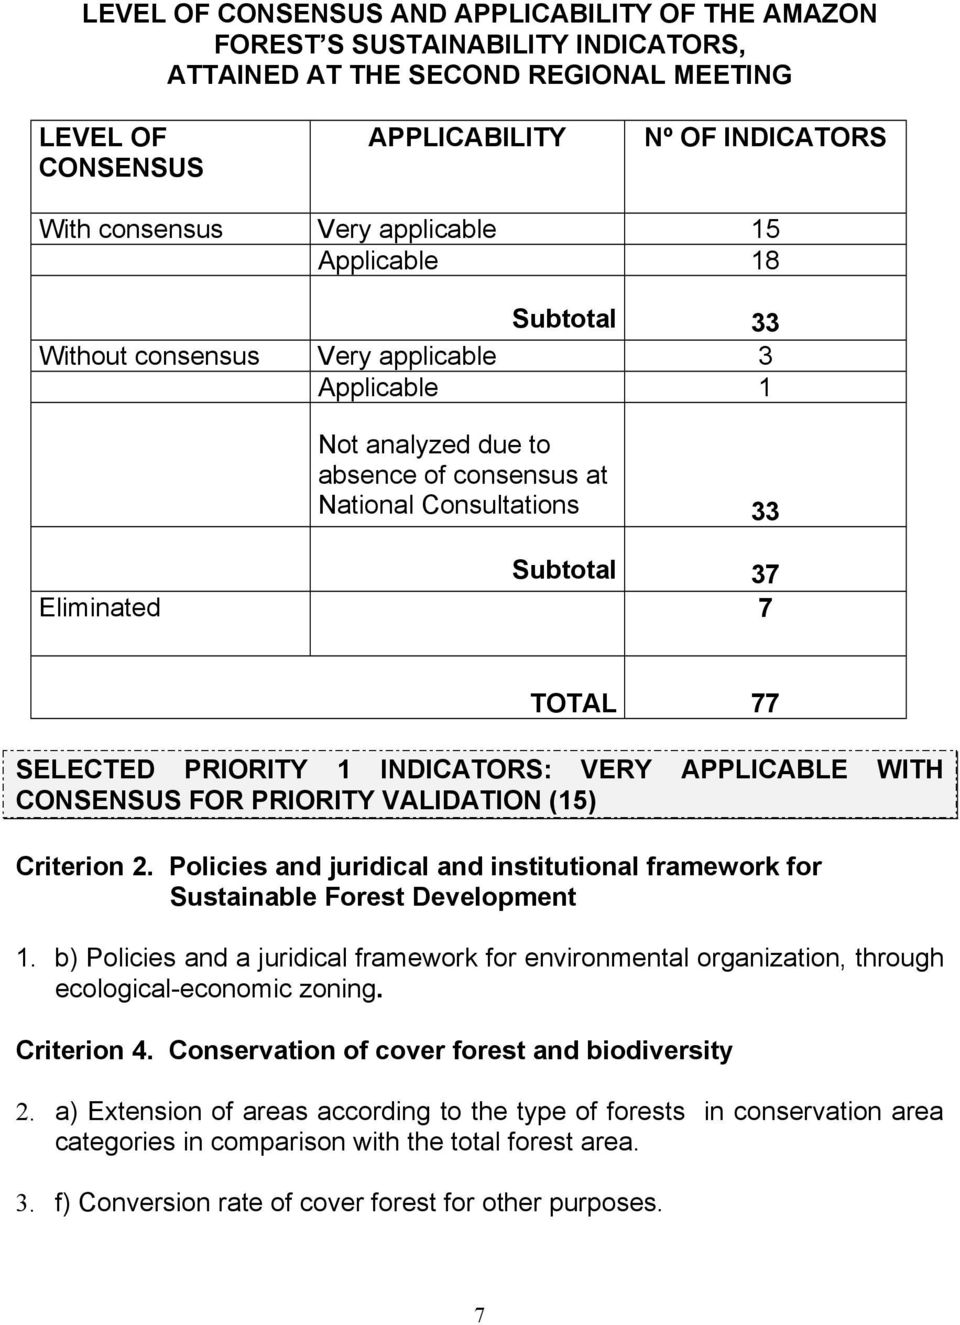 SELECTED PRIORITY 1 INDICATORS: VERY APPLICABLE WITH CONSENSUS FOR PRIORITY VALIDATION (15) Criterion 2. Policies and juridical and institutional framework for Sustainable Forest Development 1.